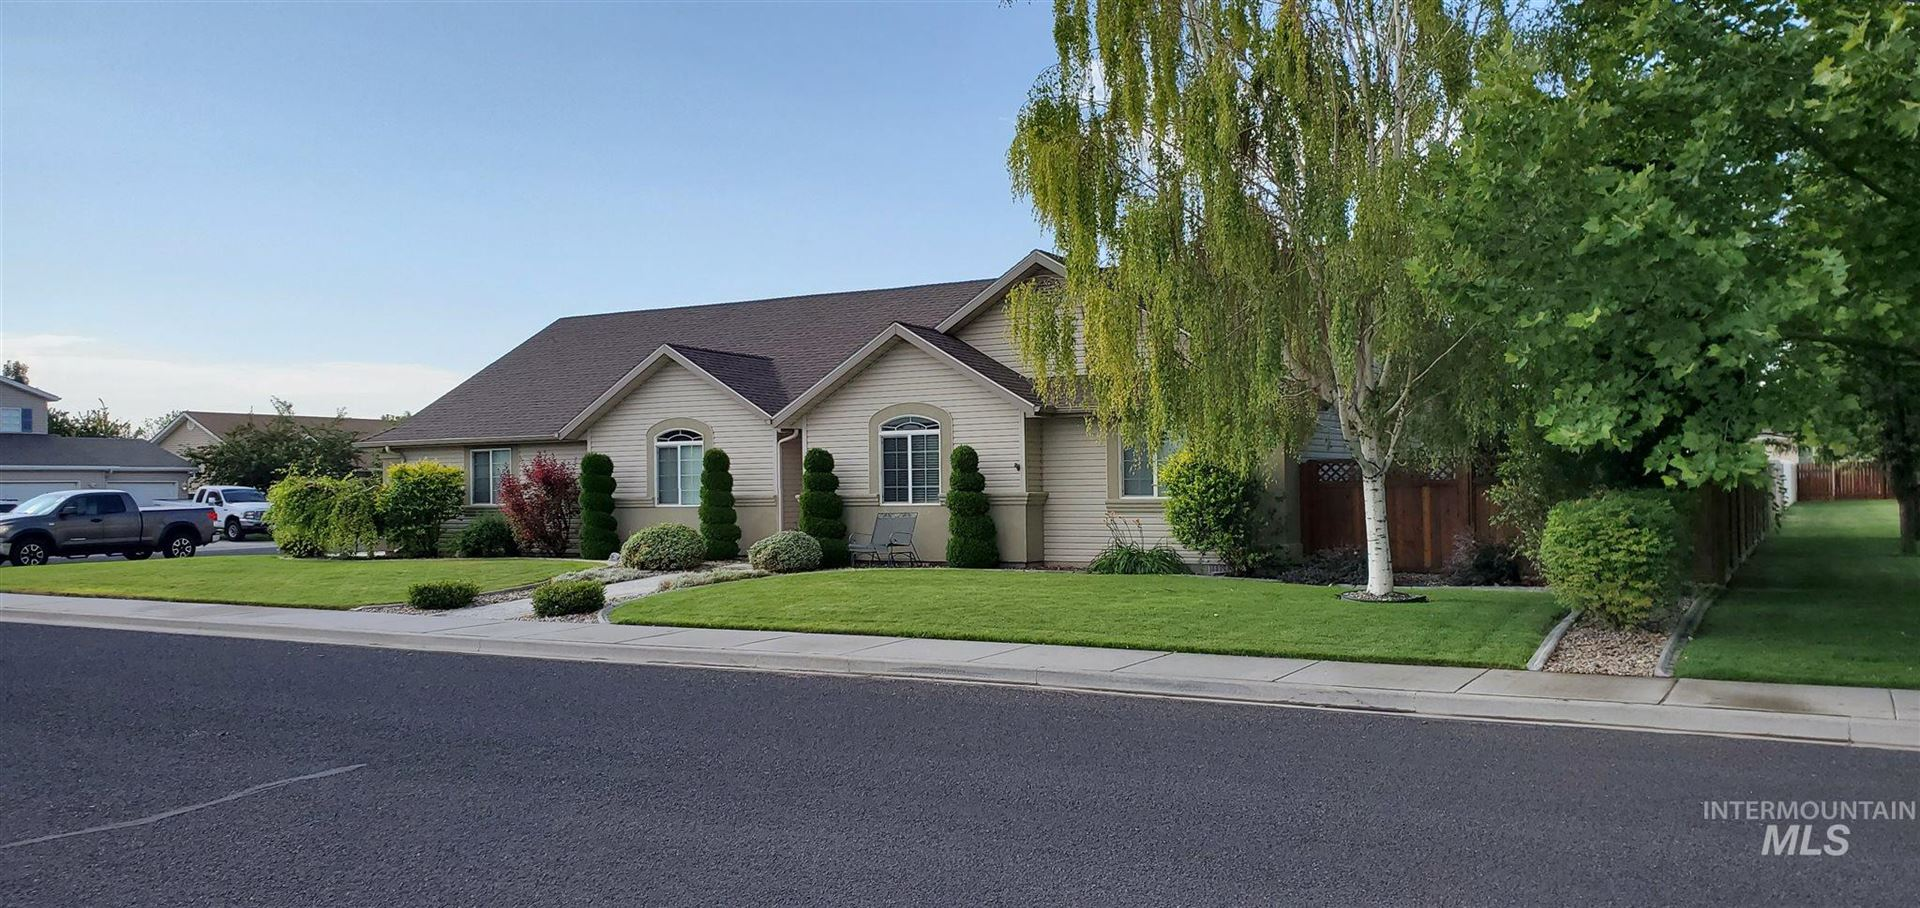 Photo of 1389 Park meadows Dr, Twin Falls, ID 83301 (MLS # 98776183)